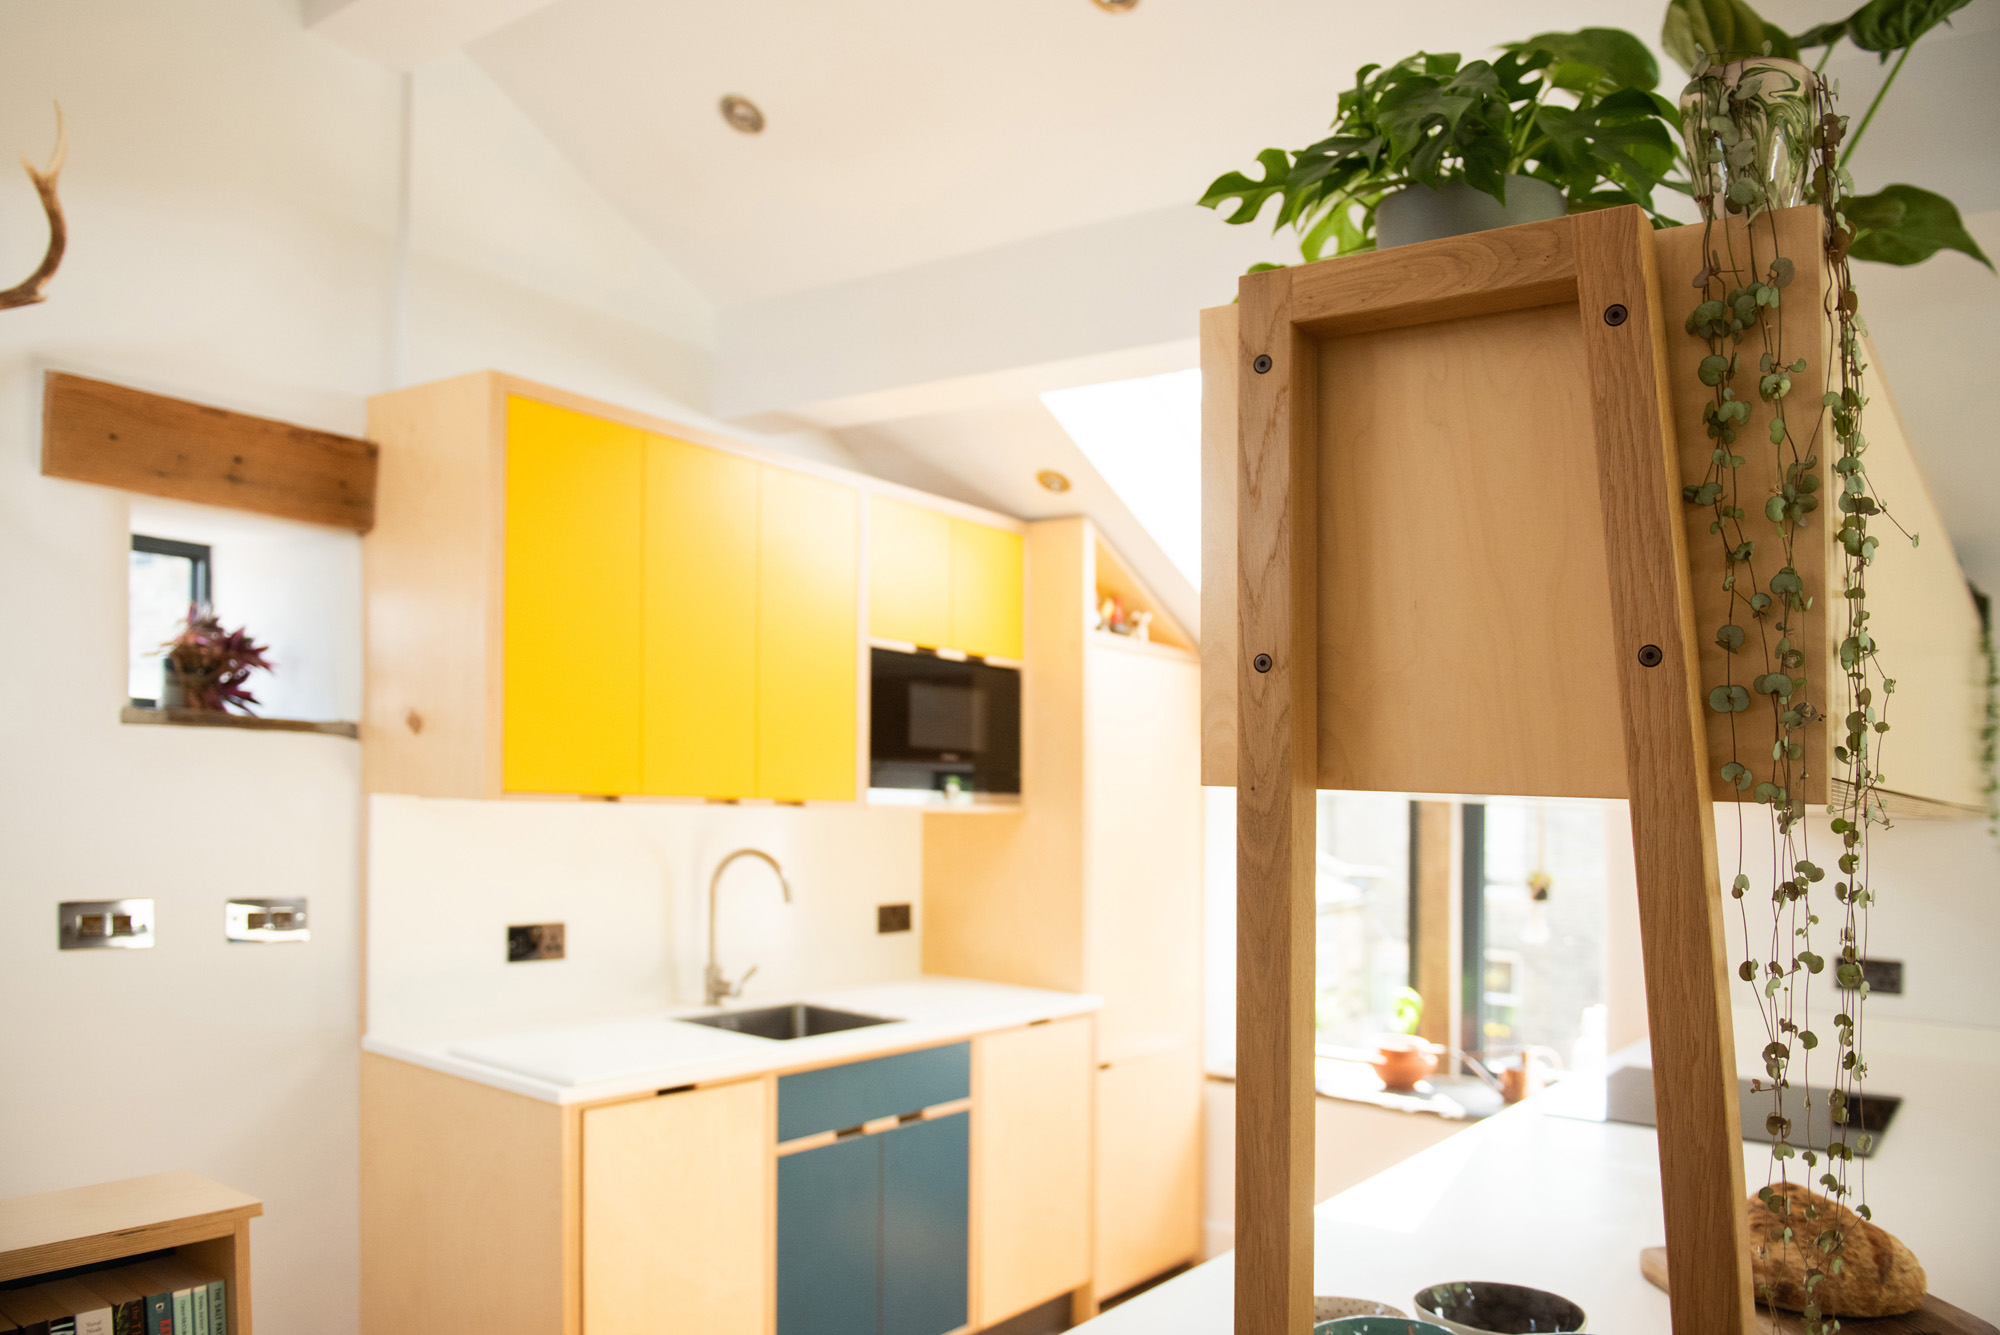 bespoke kitchen units in converted barn